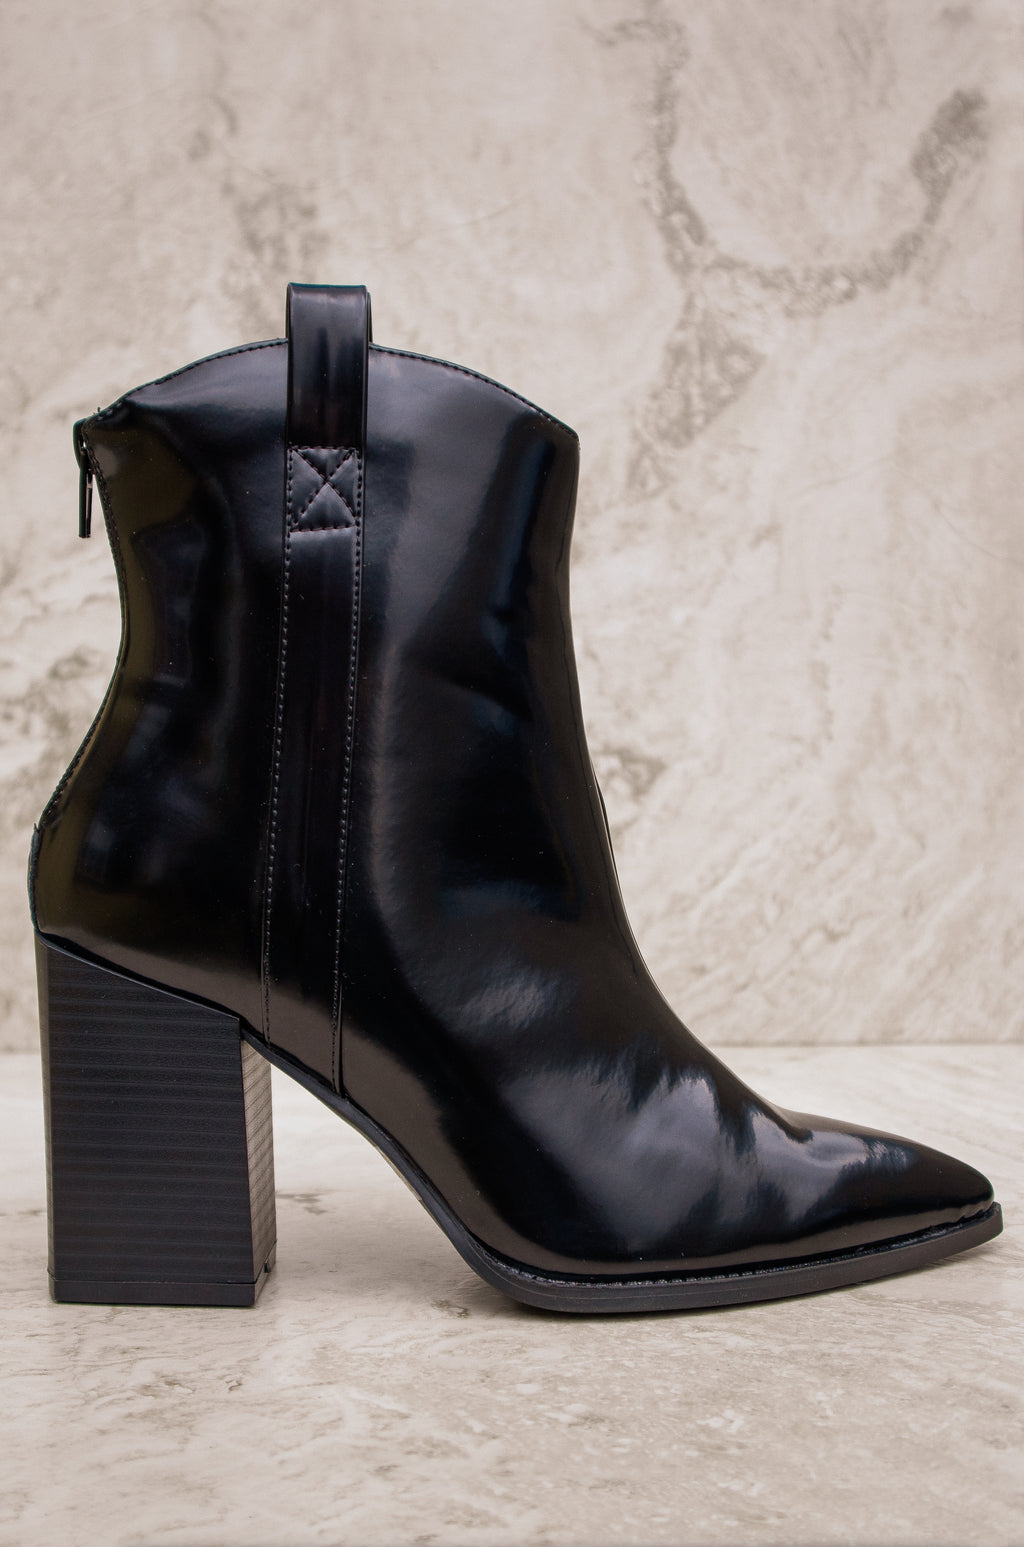 Most Wanted - Black Western Square Heel Booties